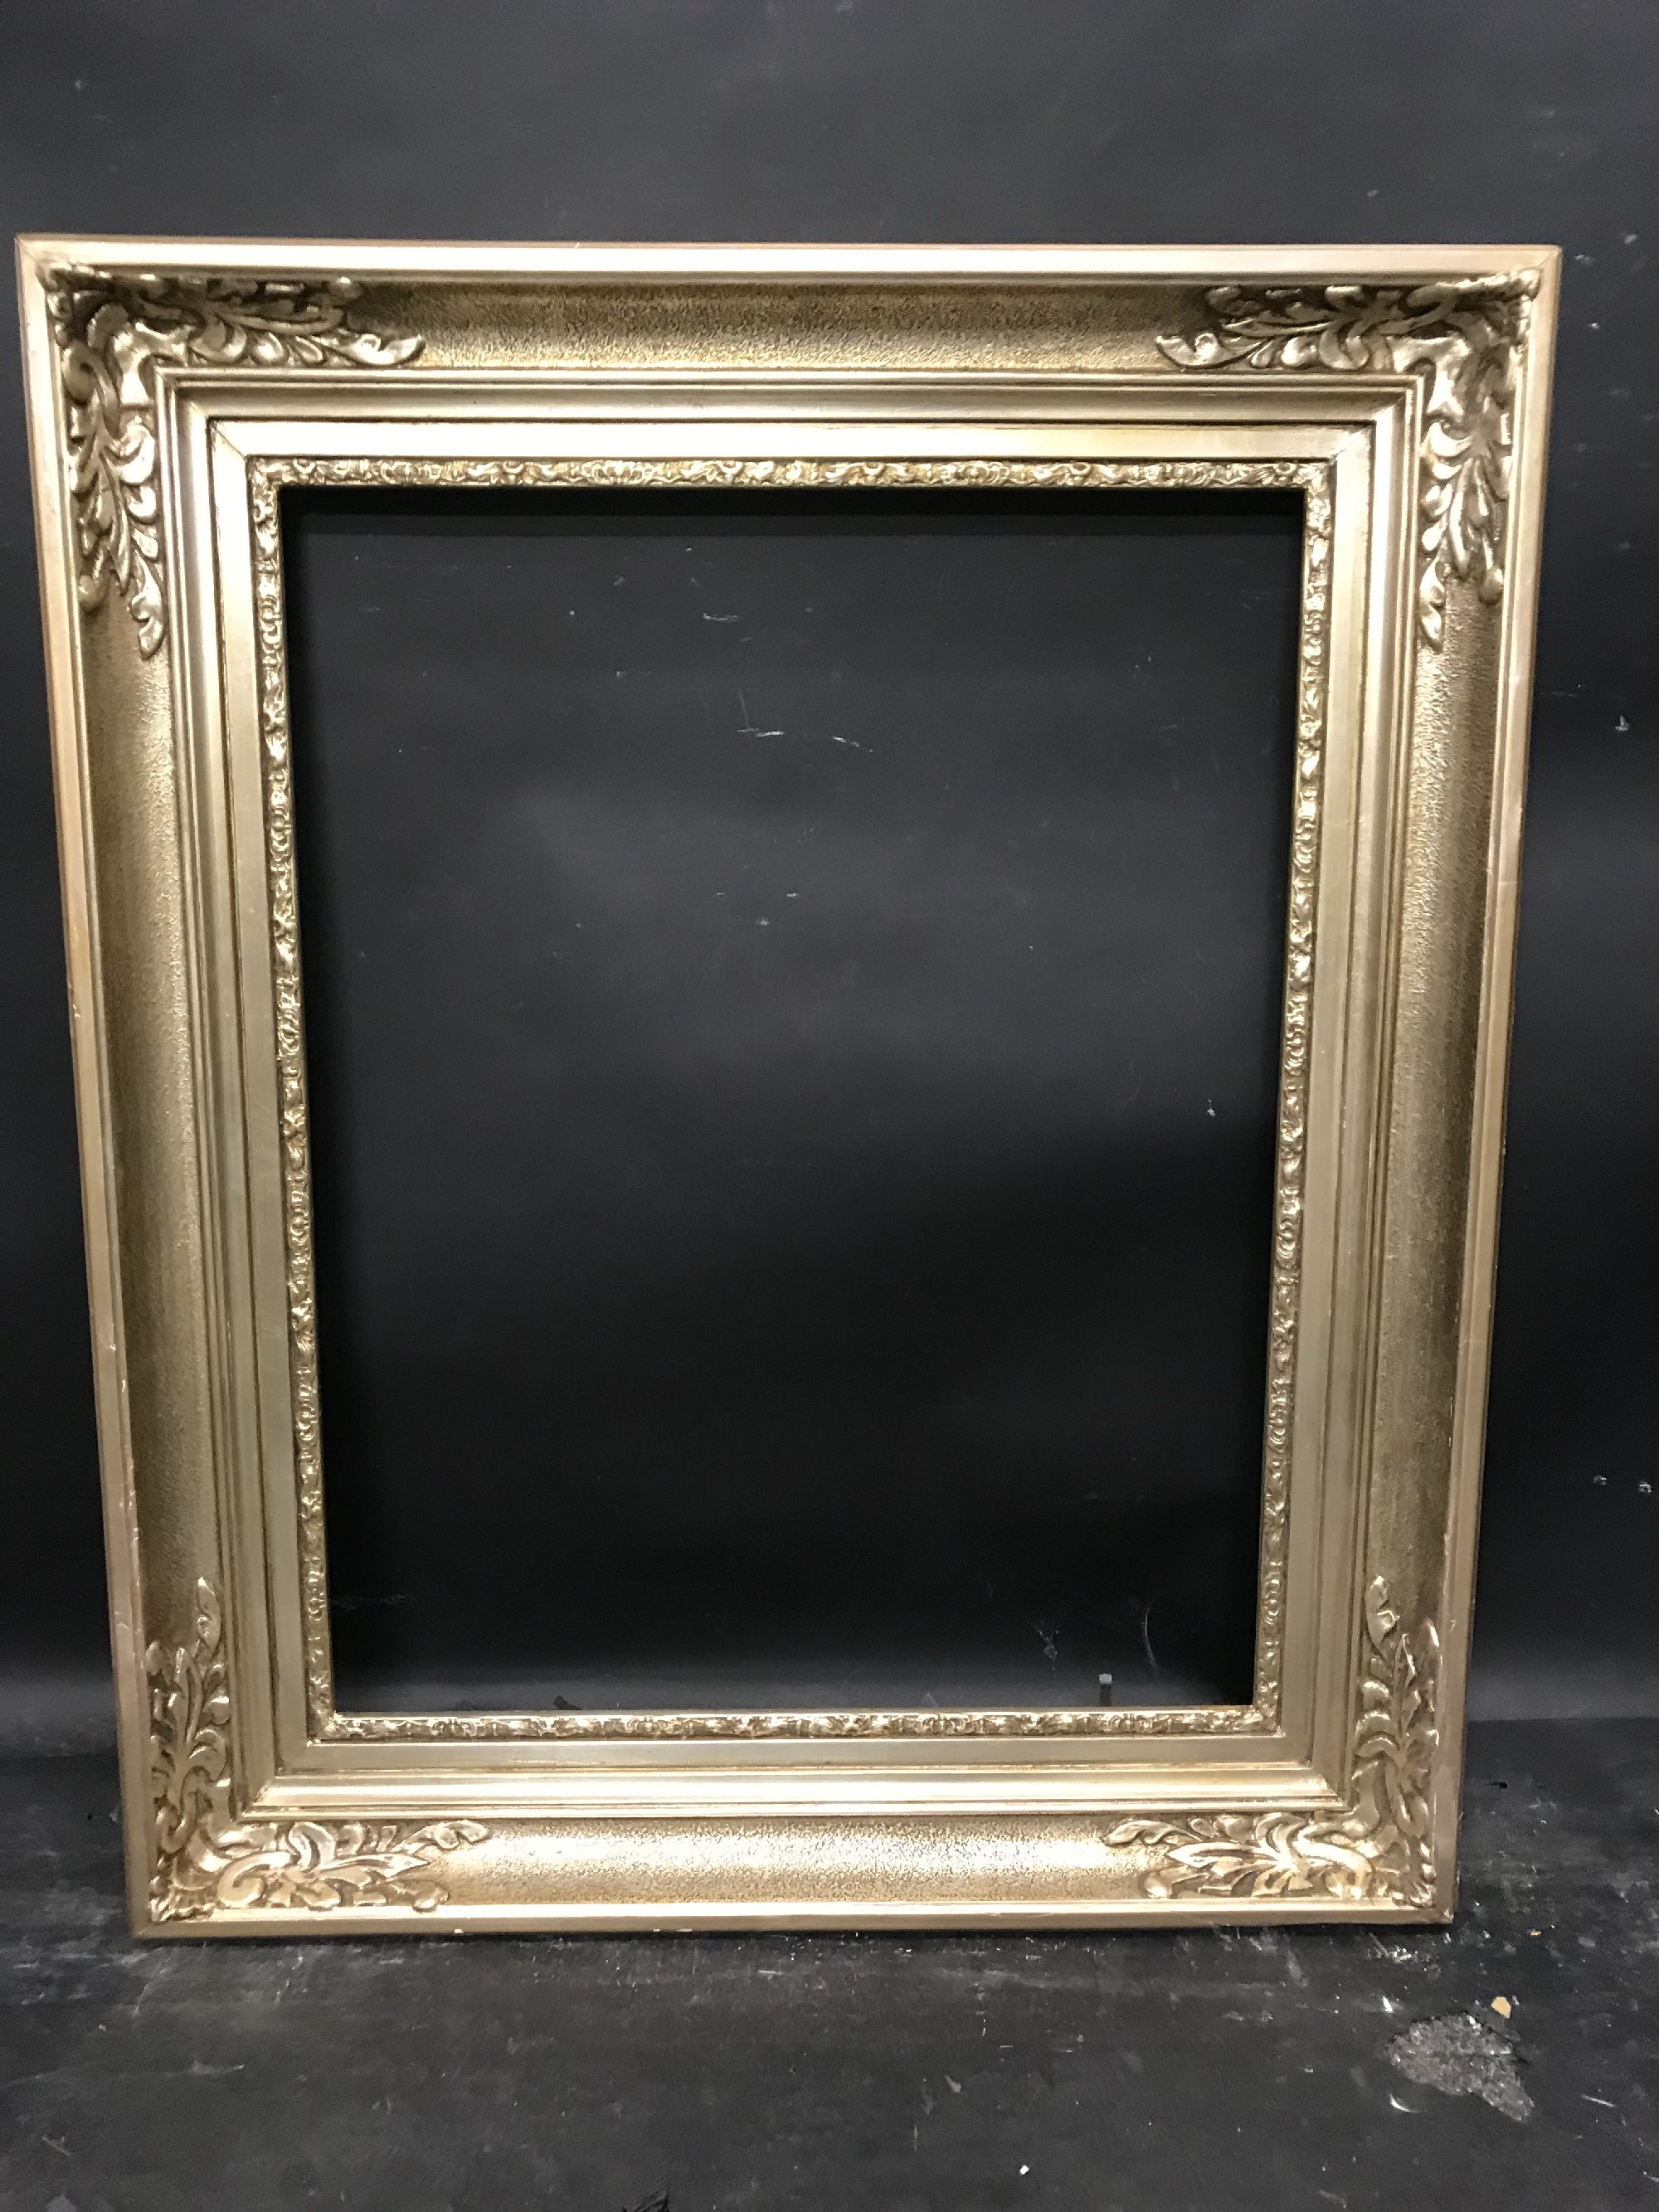 """Lot 39 - 20th Century Continental School. A Painted Silver Frame, 23"""" x 18.25""""."""